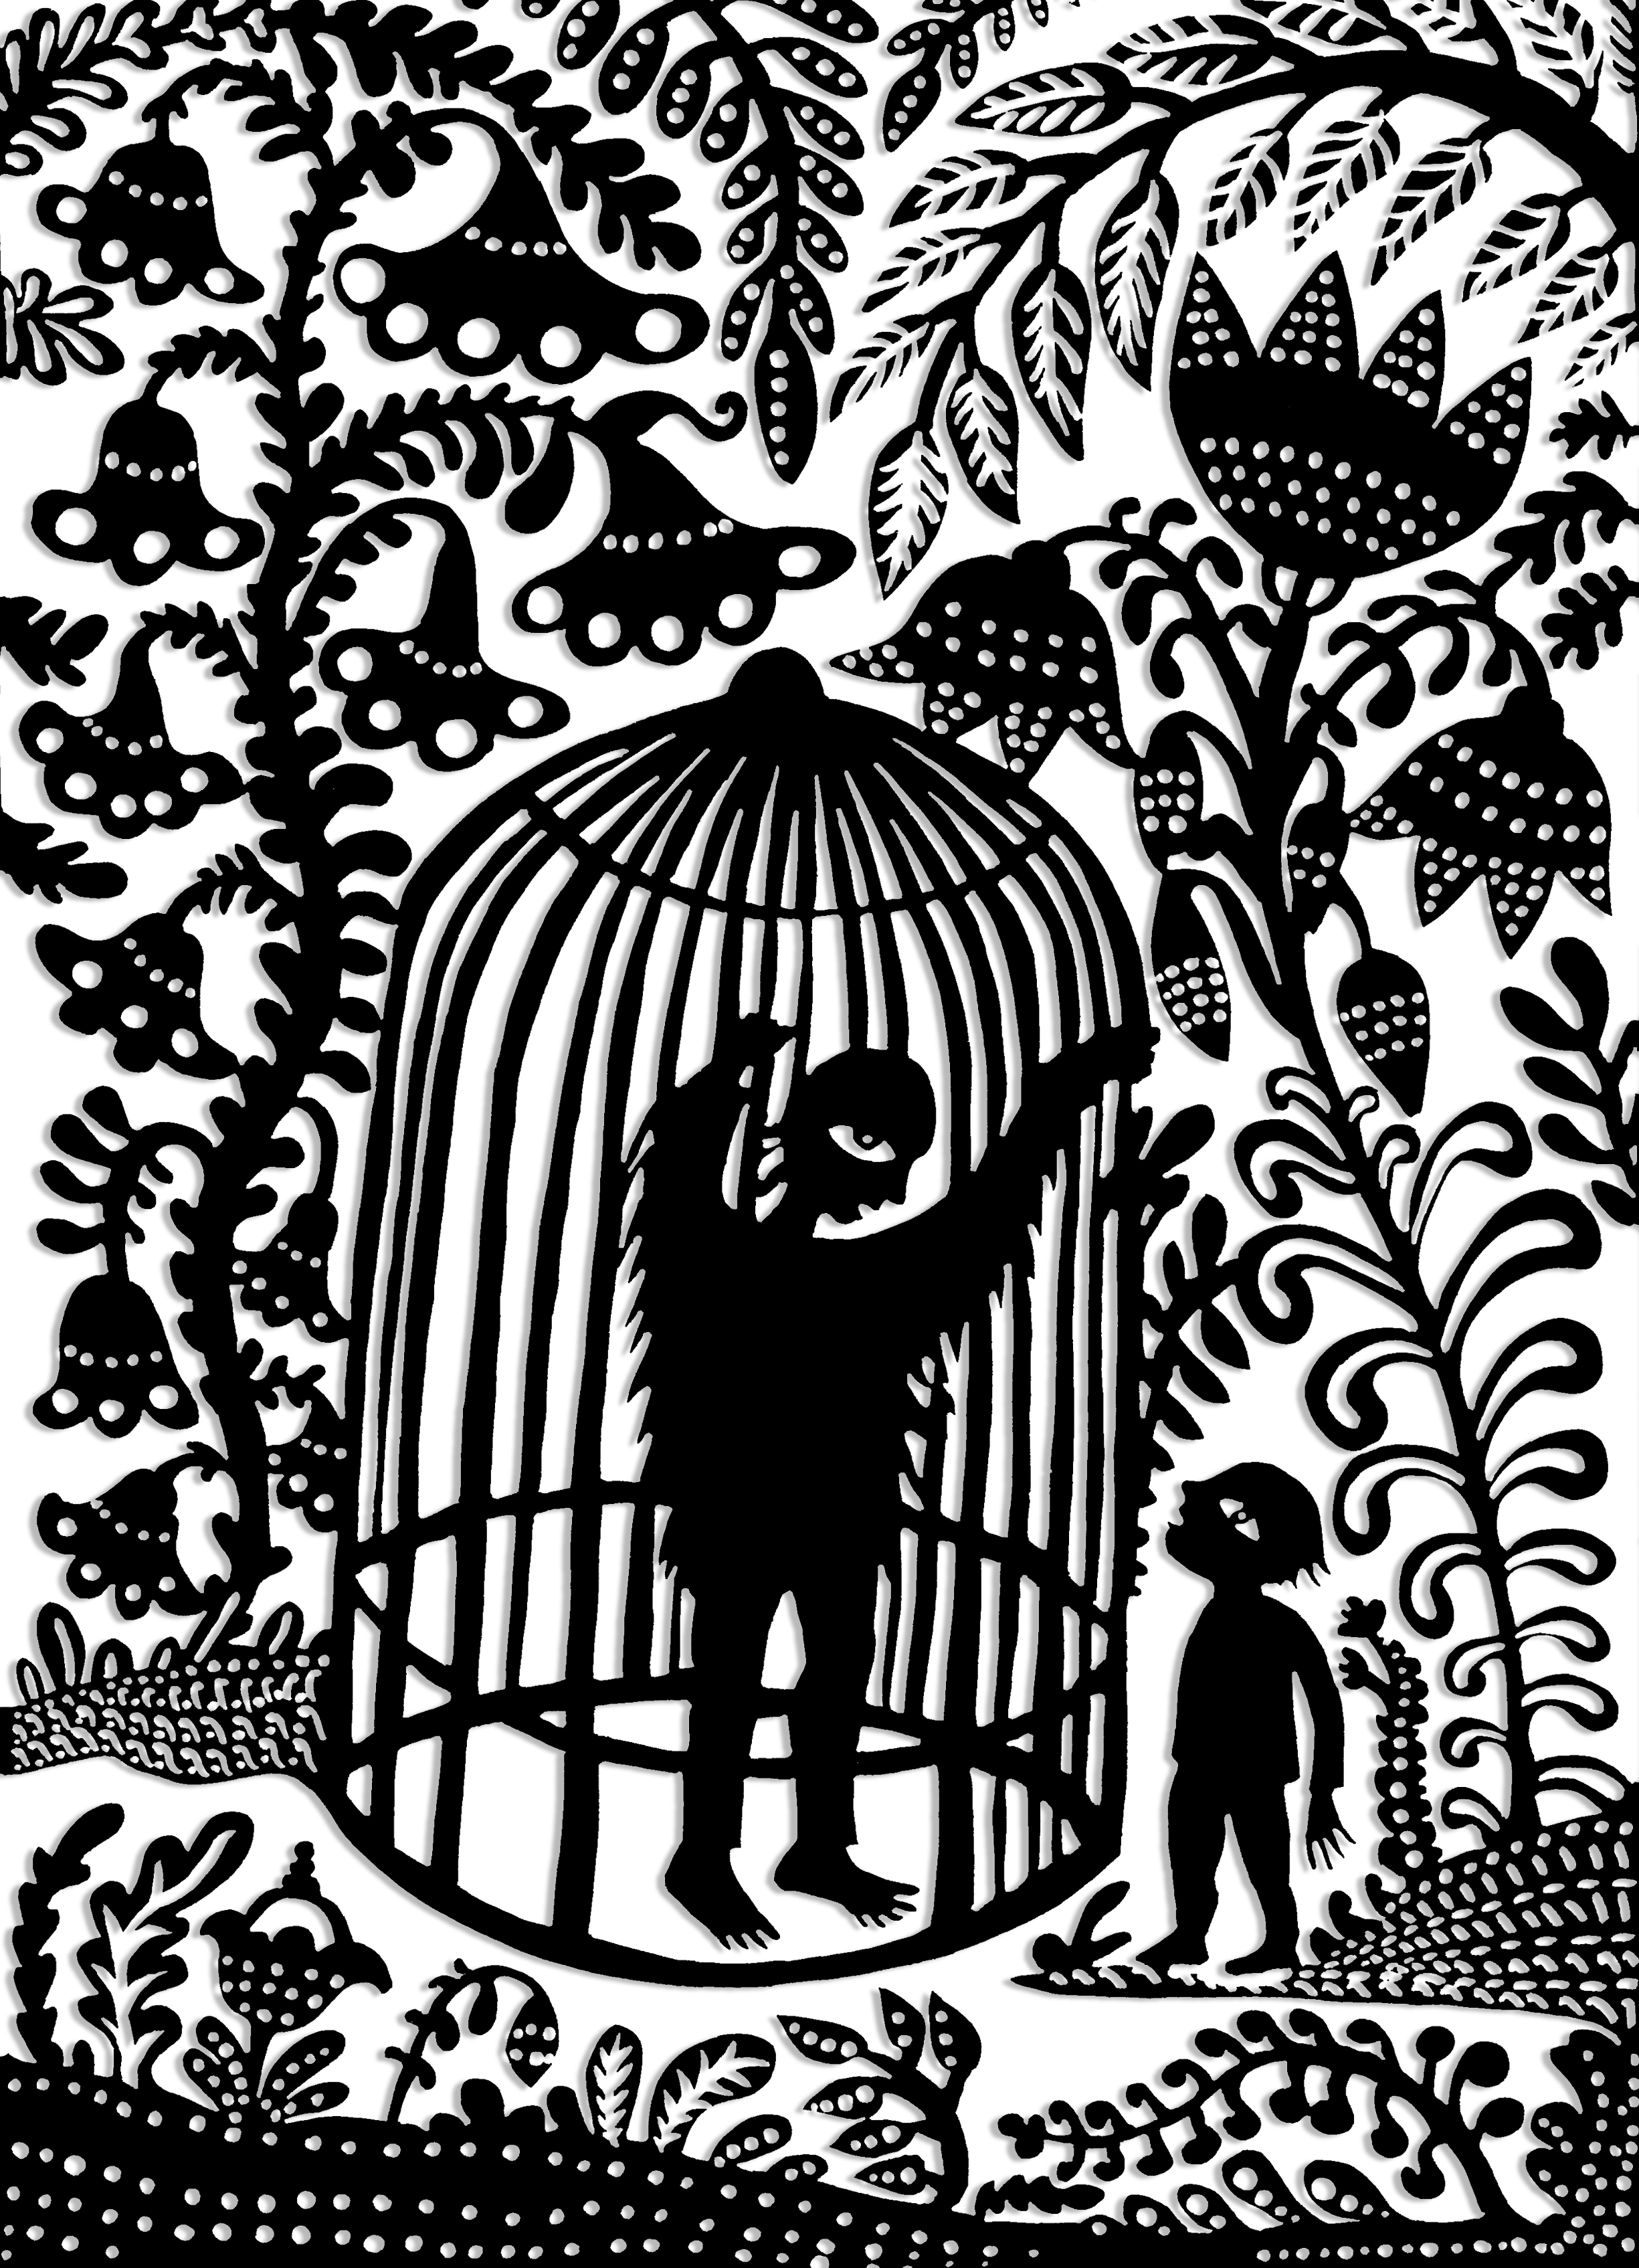 How The Grimm Brothers Saved The Fairy Tale